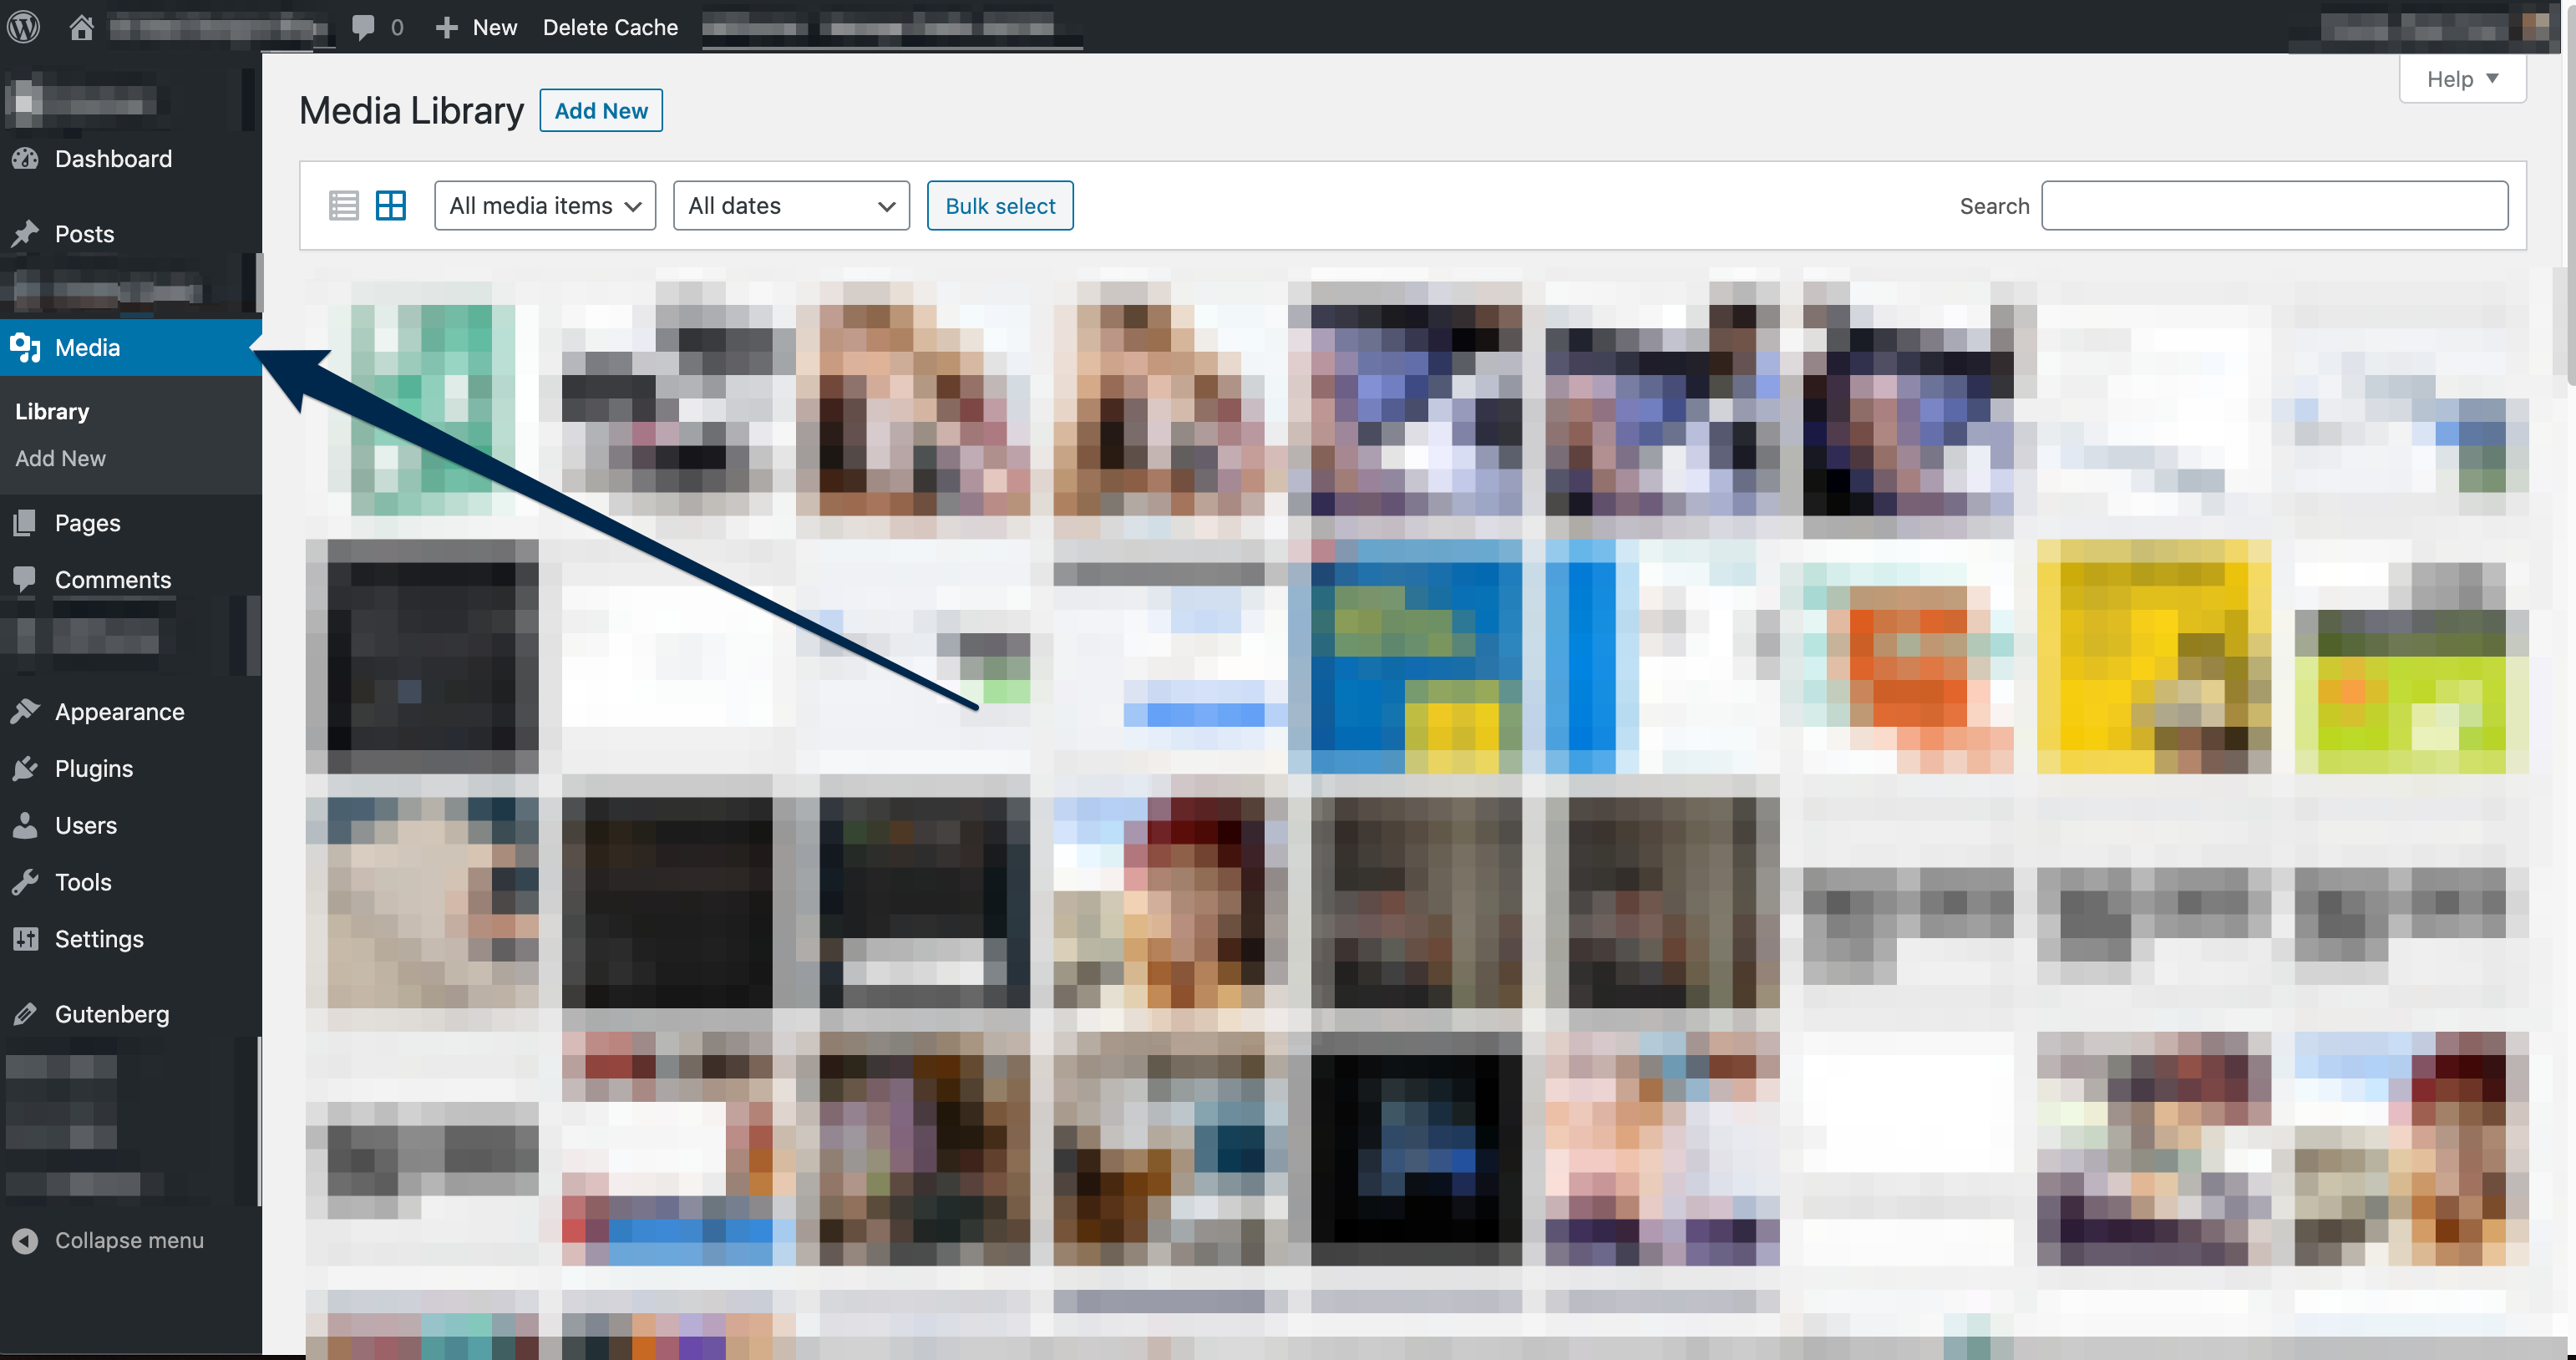 A view inside of the Media Library with an arrow pointed at the Media option in the Main WordPress sidebar to the left